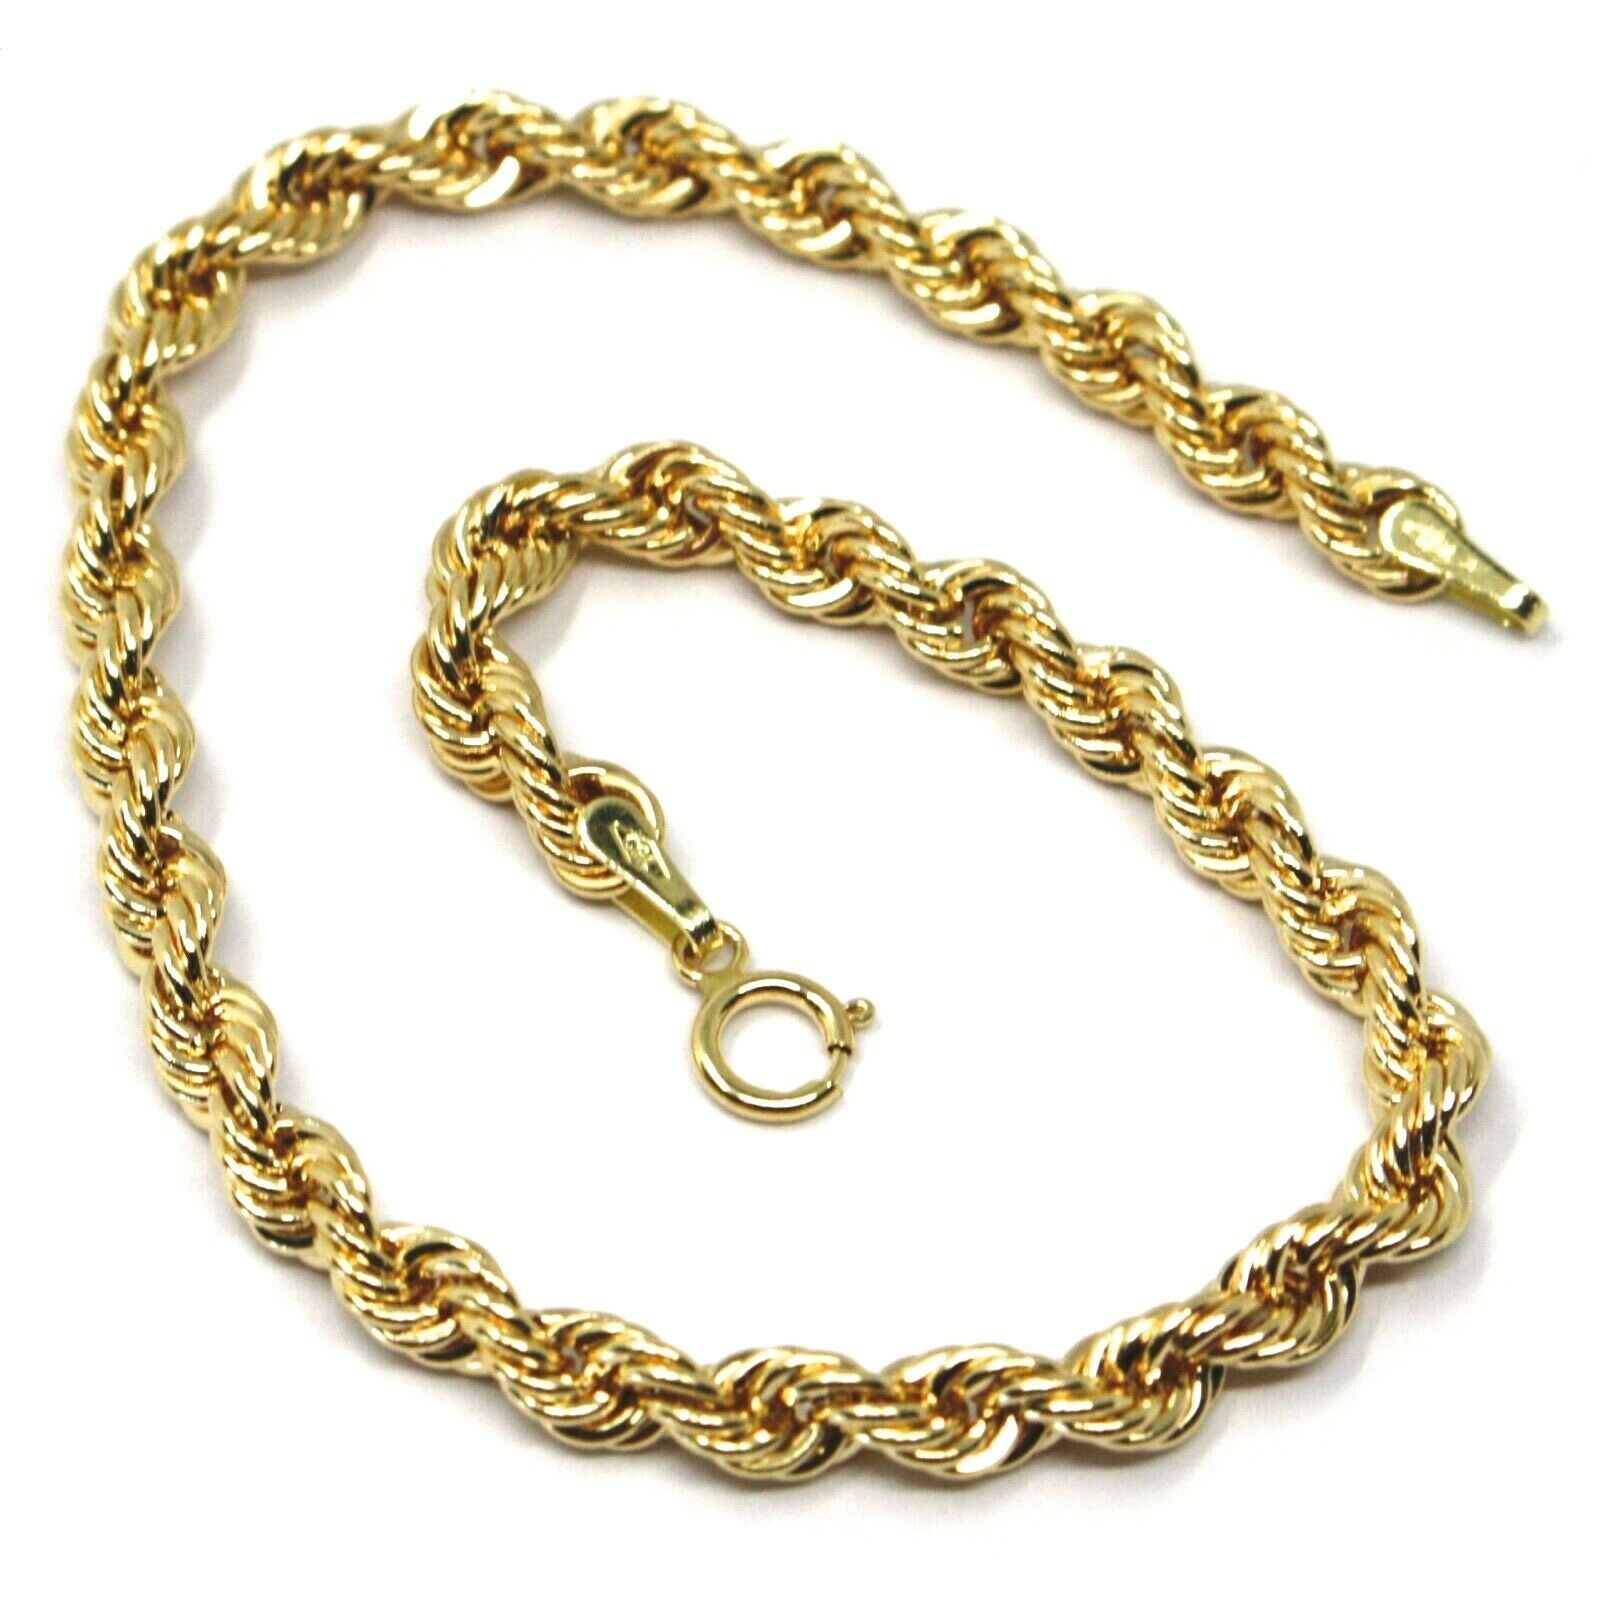 18K YELLOW GOLD BRACELET 4 MM BRAID ROPE LINK, 7.30 INCHES LONG, MADE IN ITALY